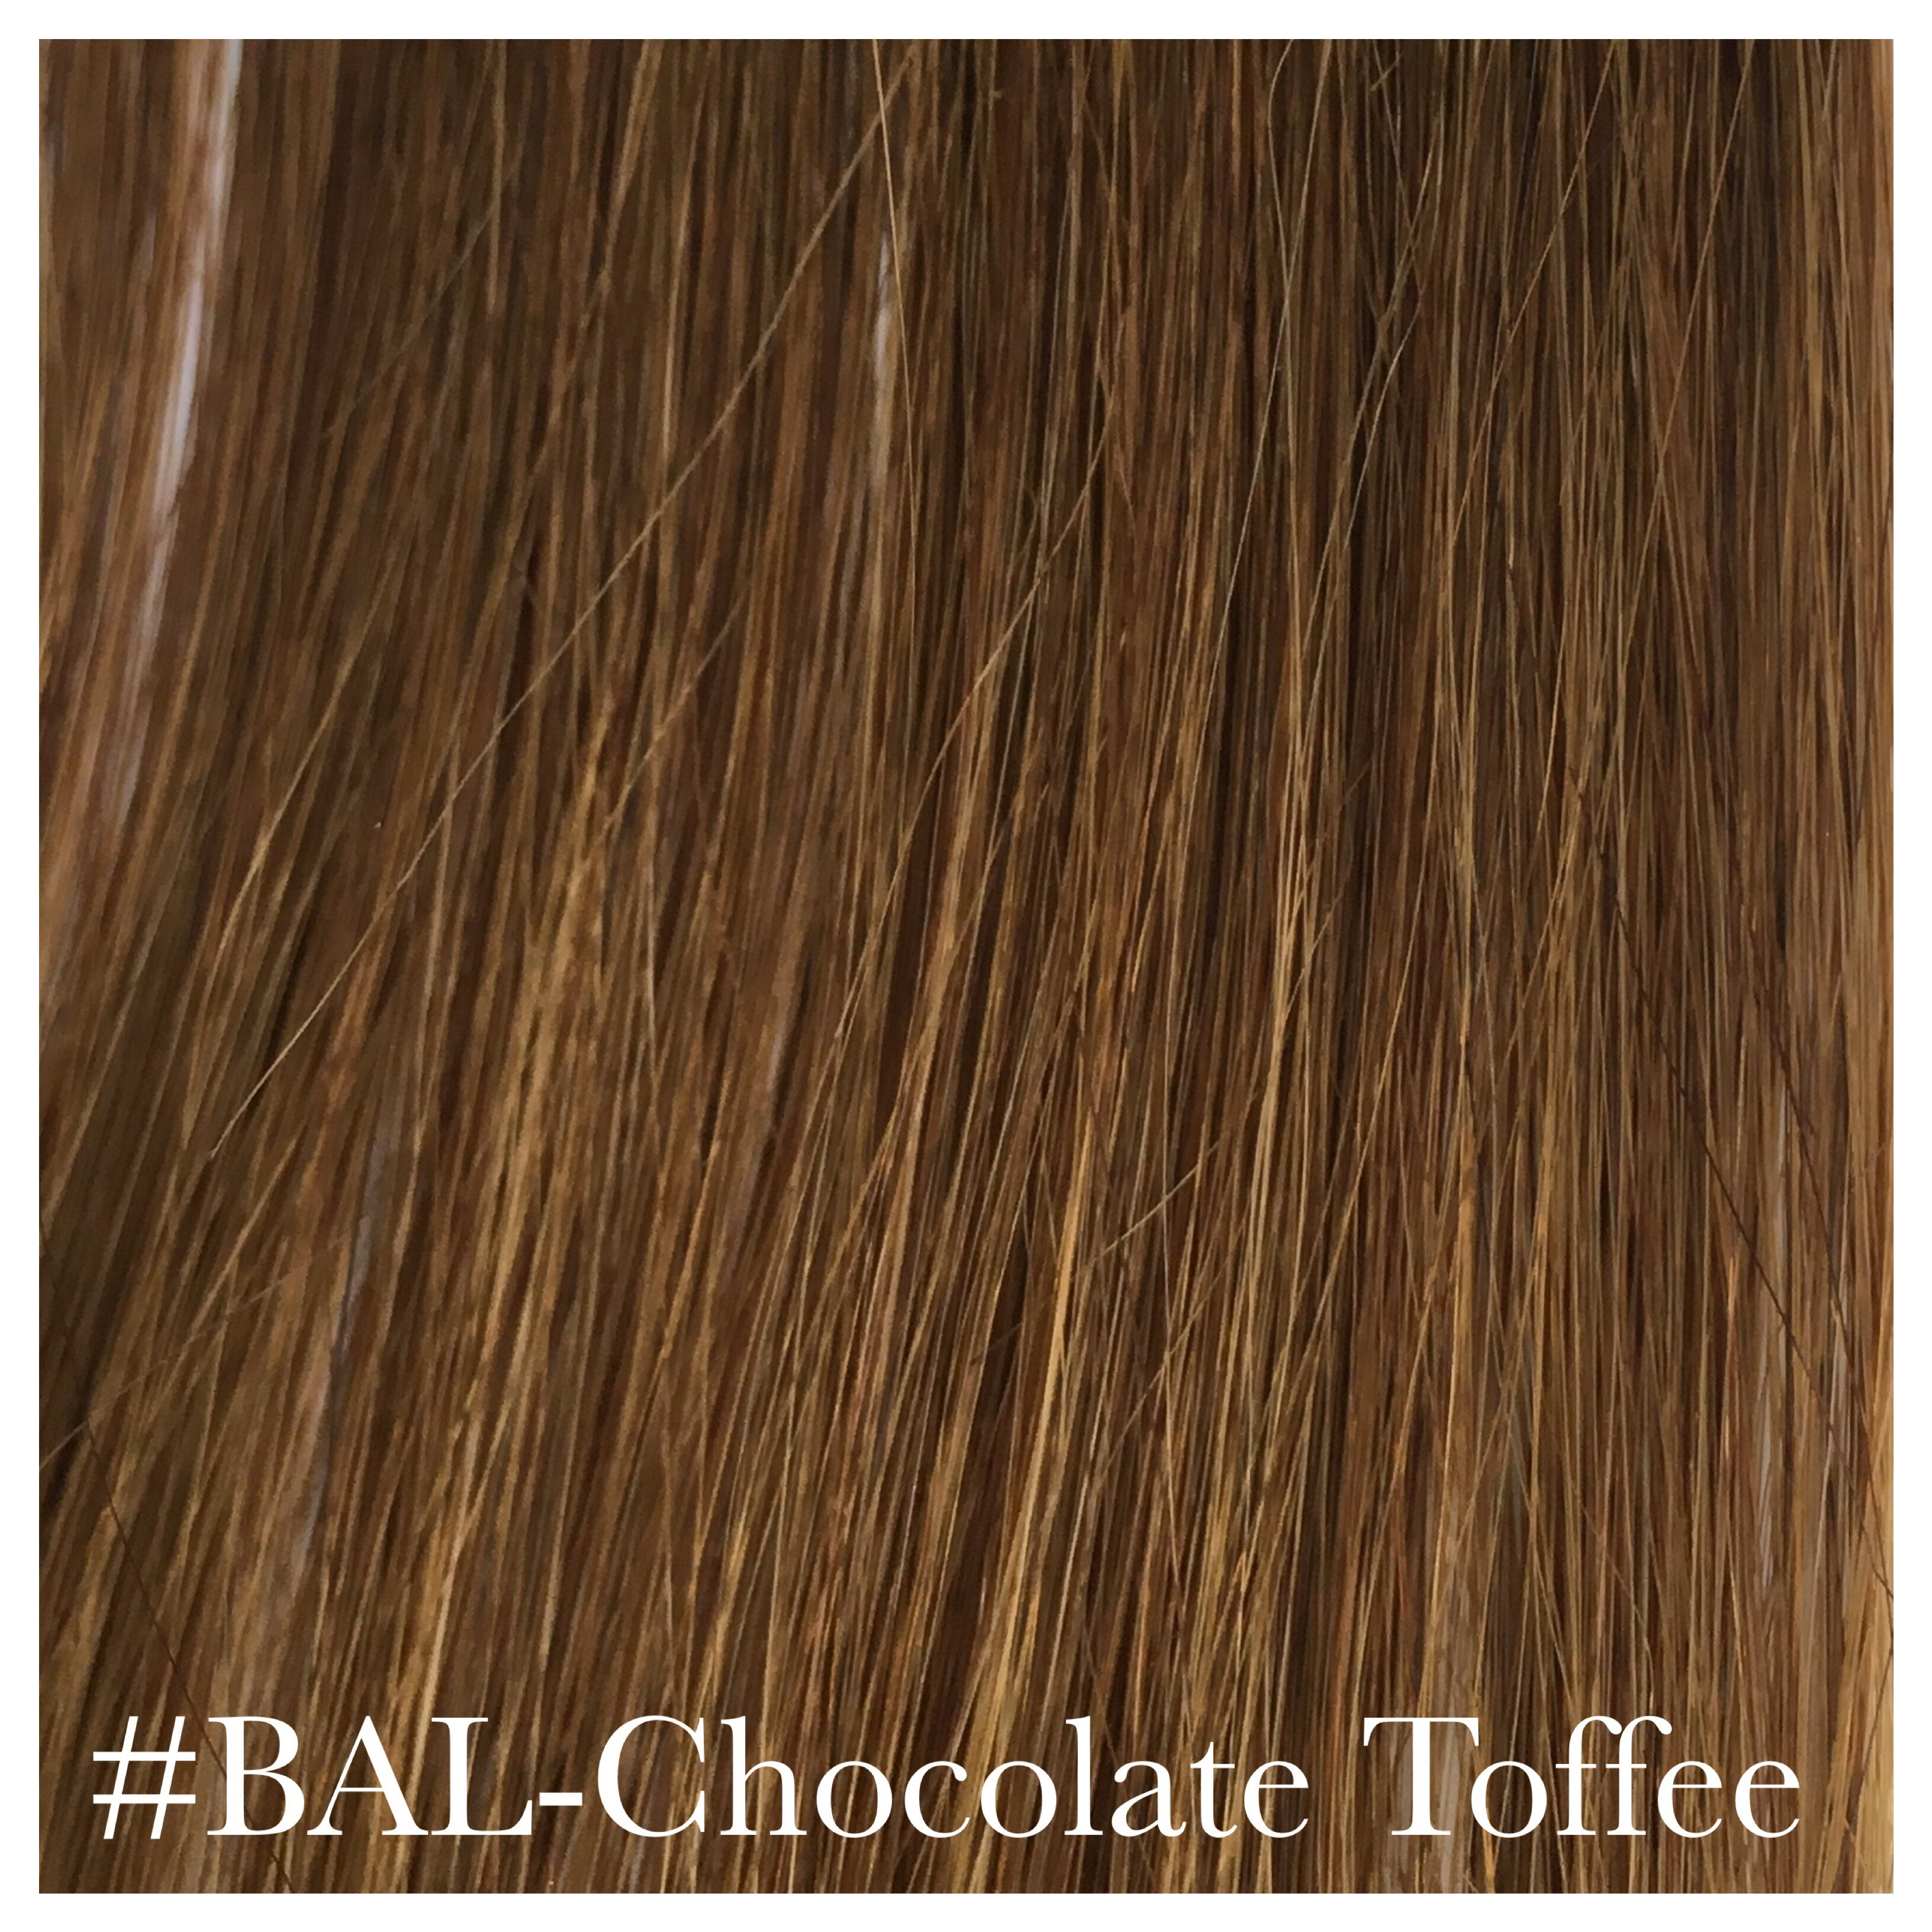 BAL - #Chocolate Toffee